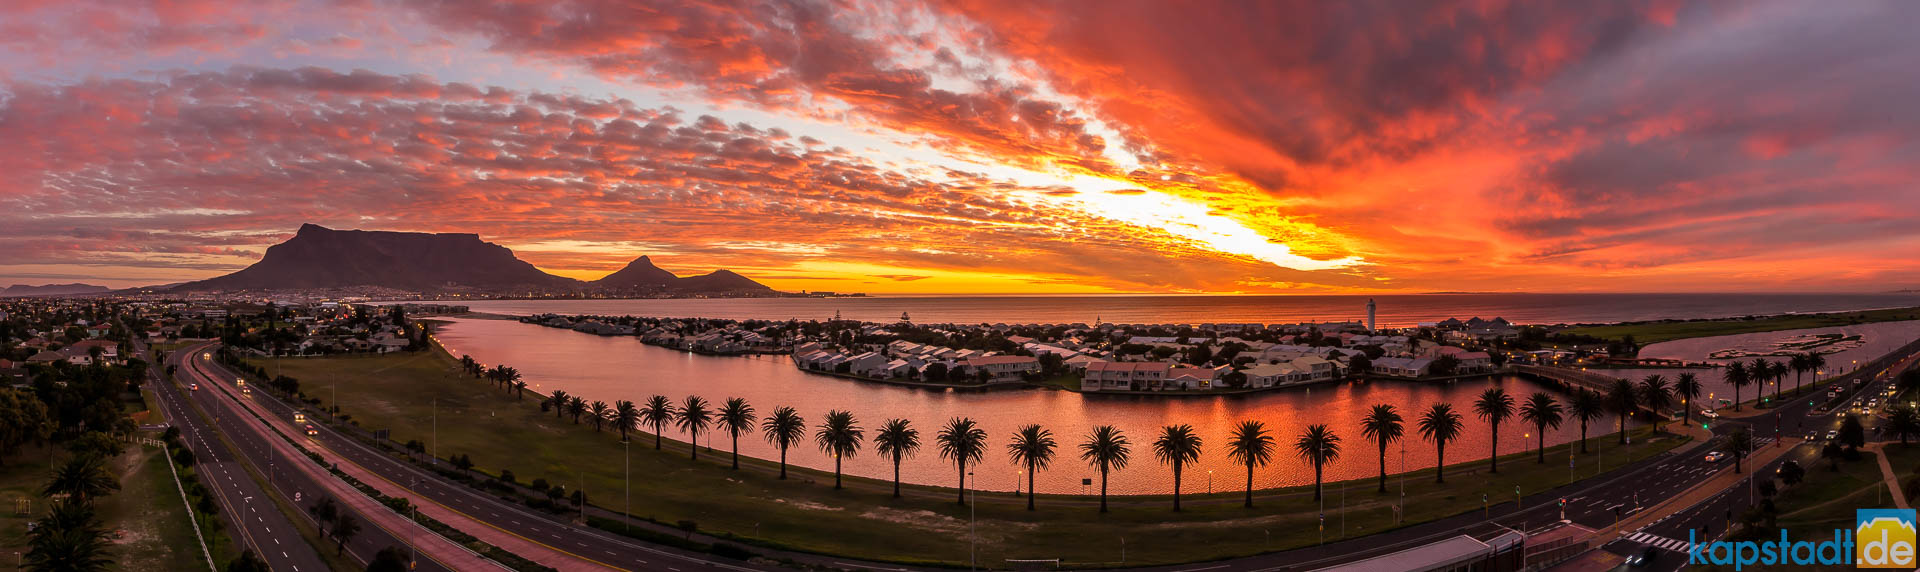 Table Mountain and Woodbridge Island in the evening during sunset seen from Milnerton